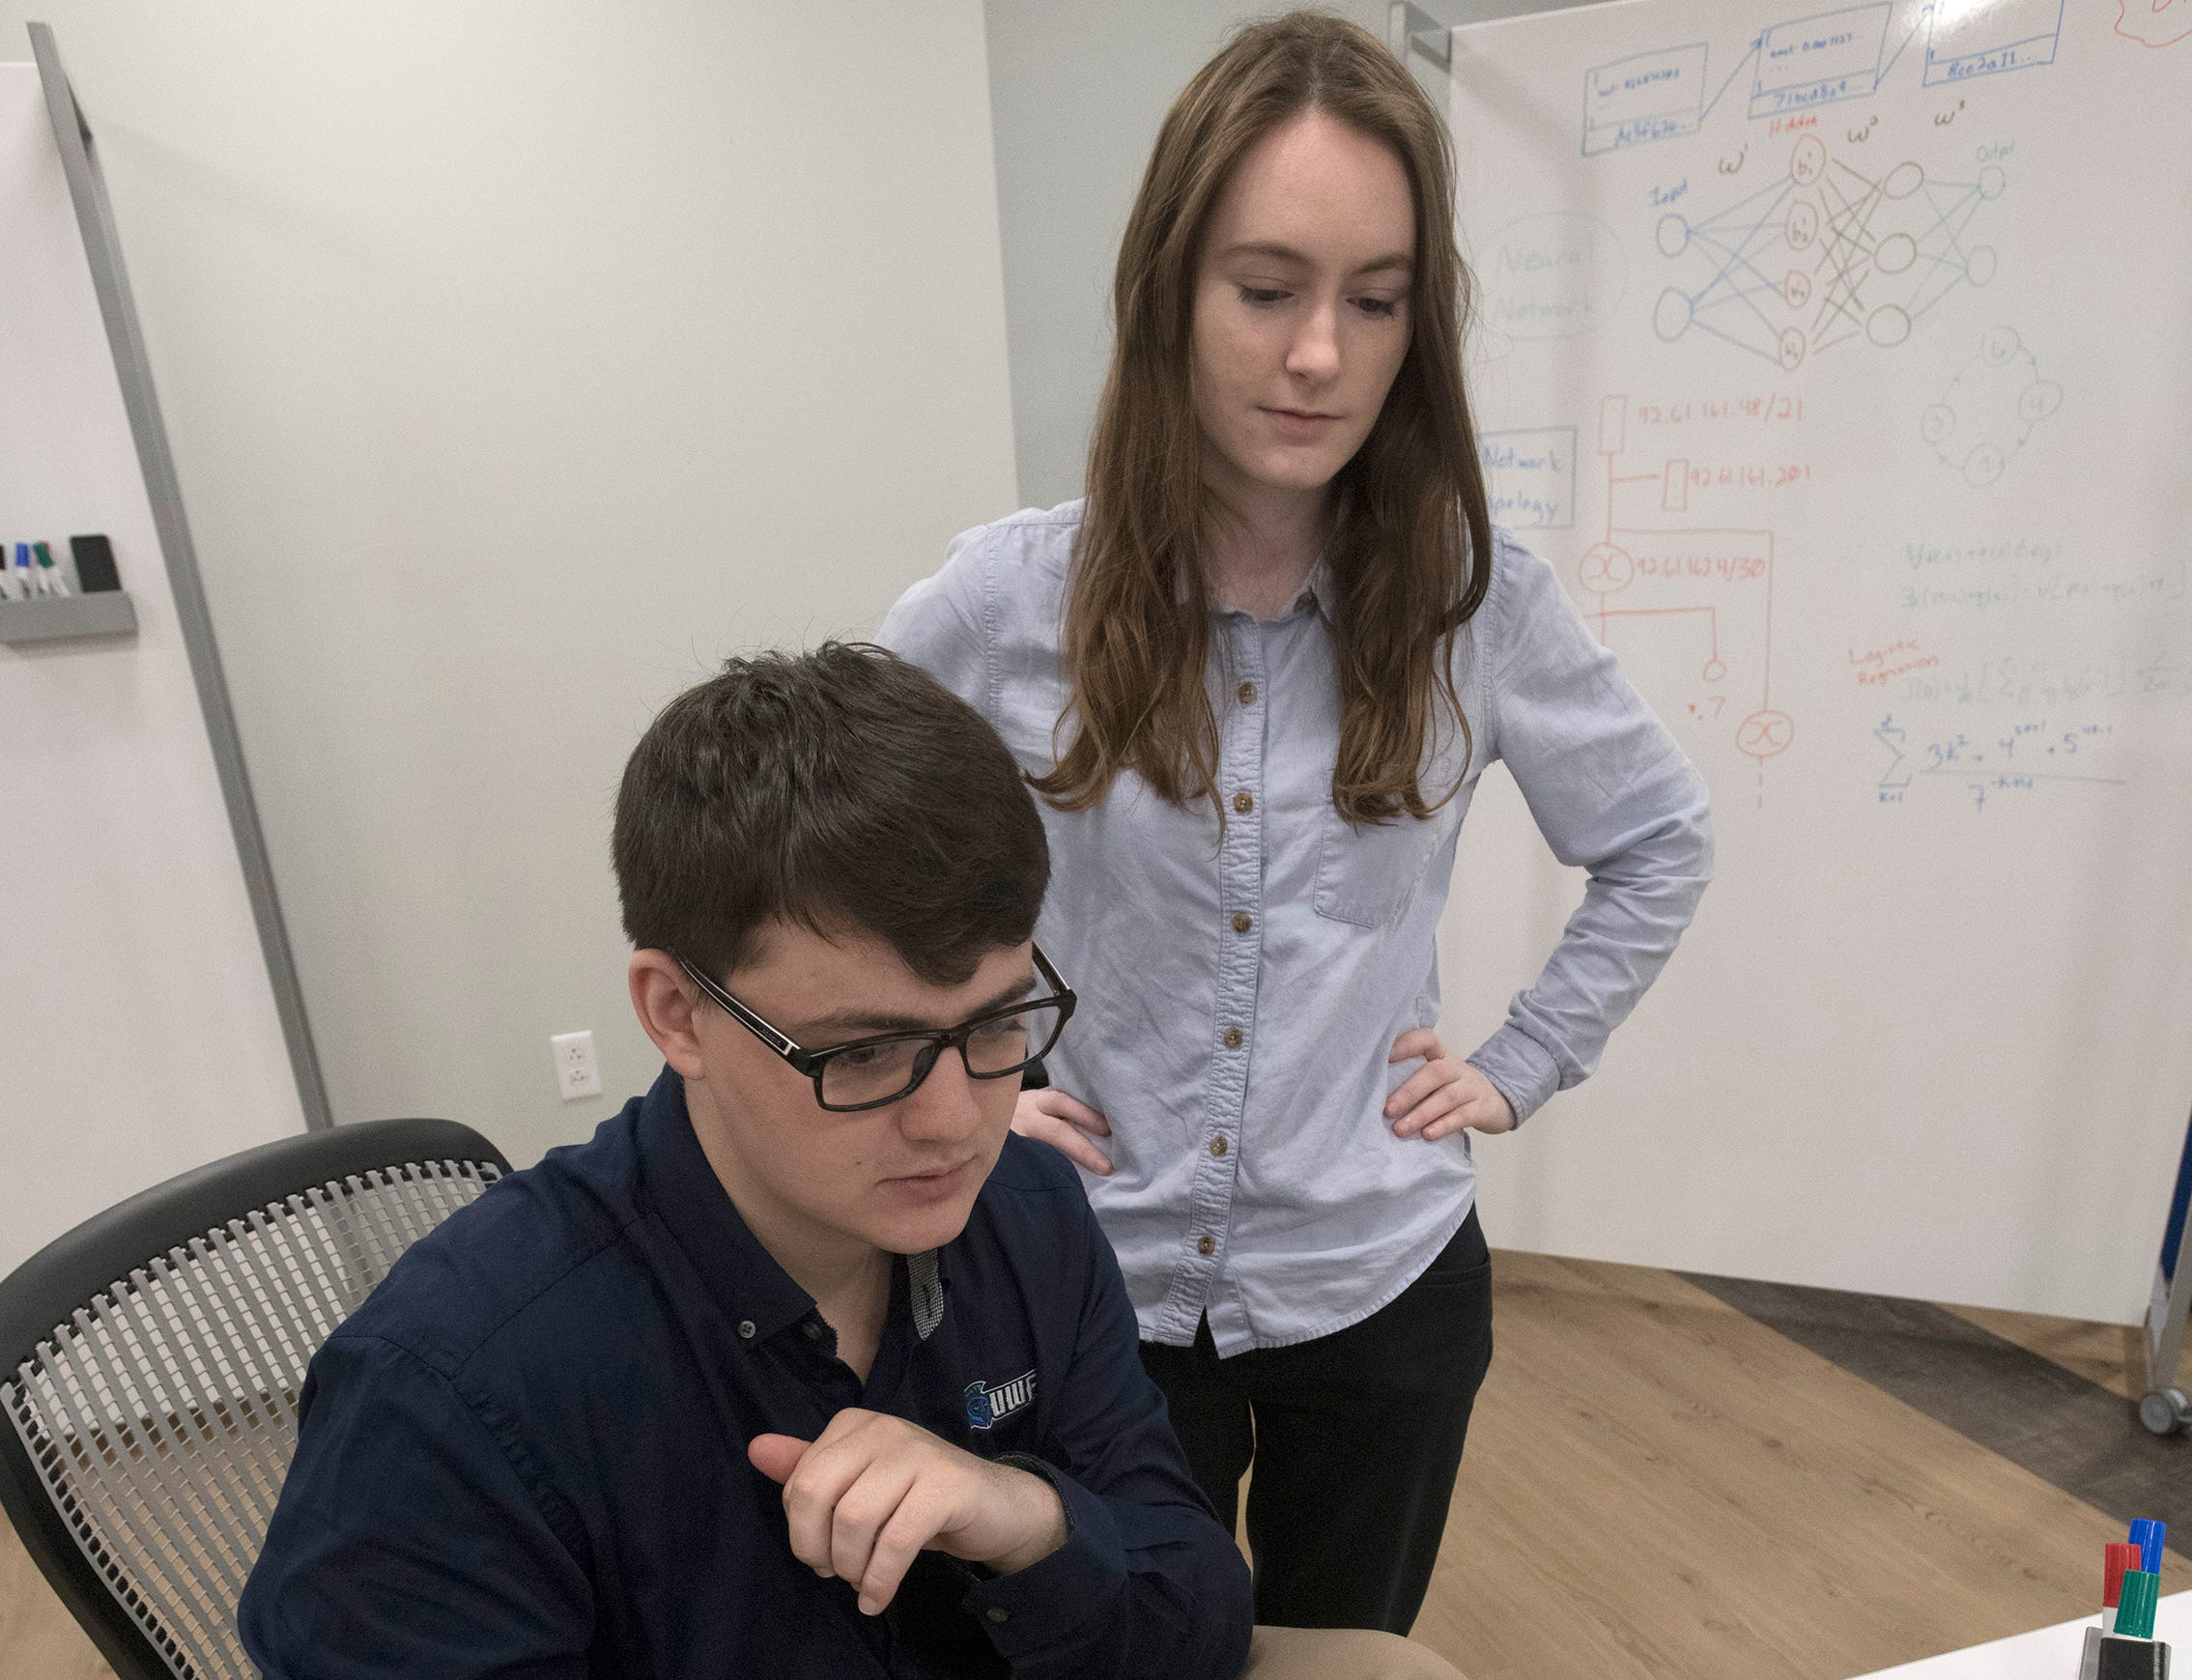 University of West Florida cybersecurity ambassadors Carson Wilber and Ashley Runwick begin working out of the new Center for Cybersecurity in downtown Pensacola on Friday, April 12, 2019. Located in the Studer Community Institute building the new UWF center will increase the university's presence in downtown Pensacola.